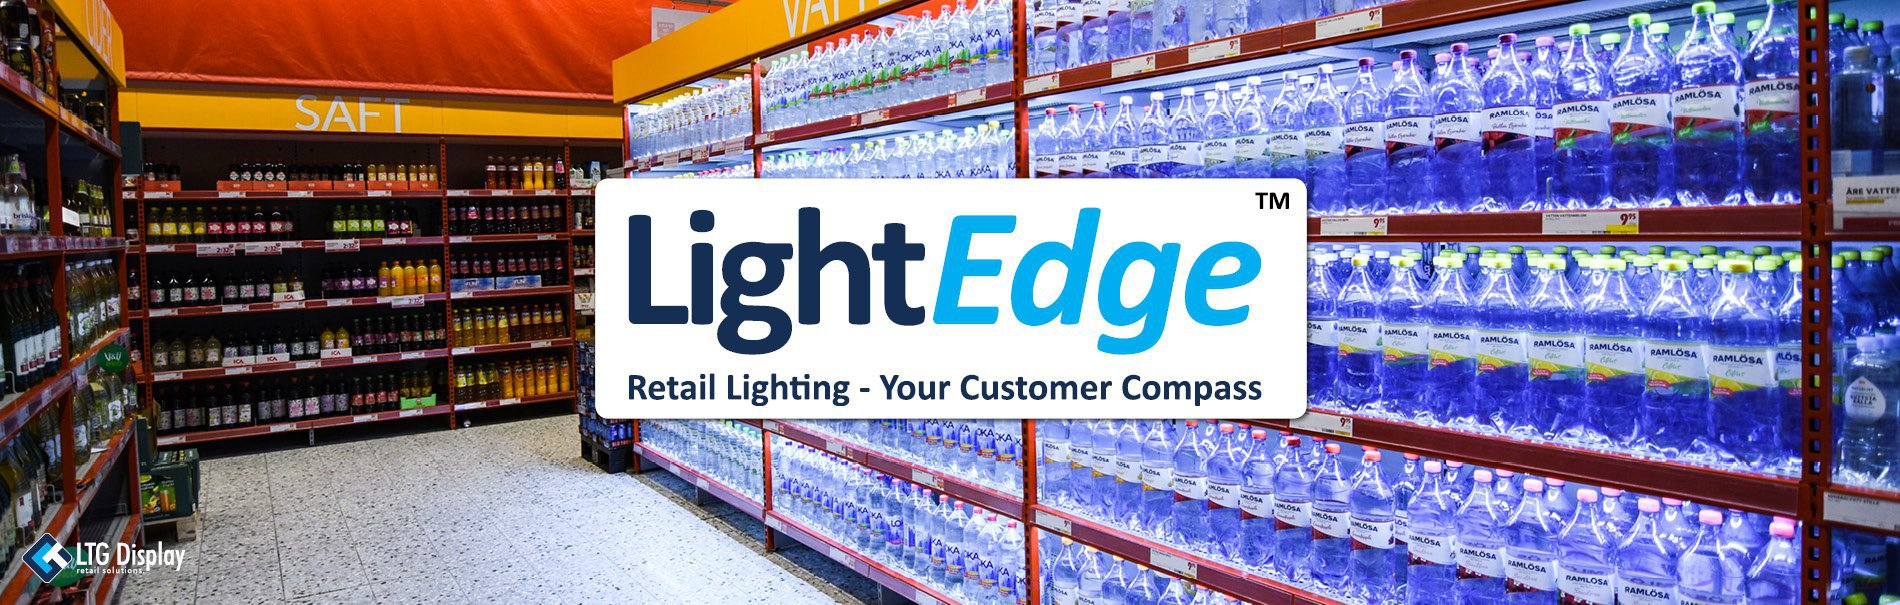 LightEdge - Retail Lighting